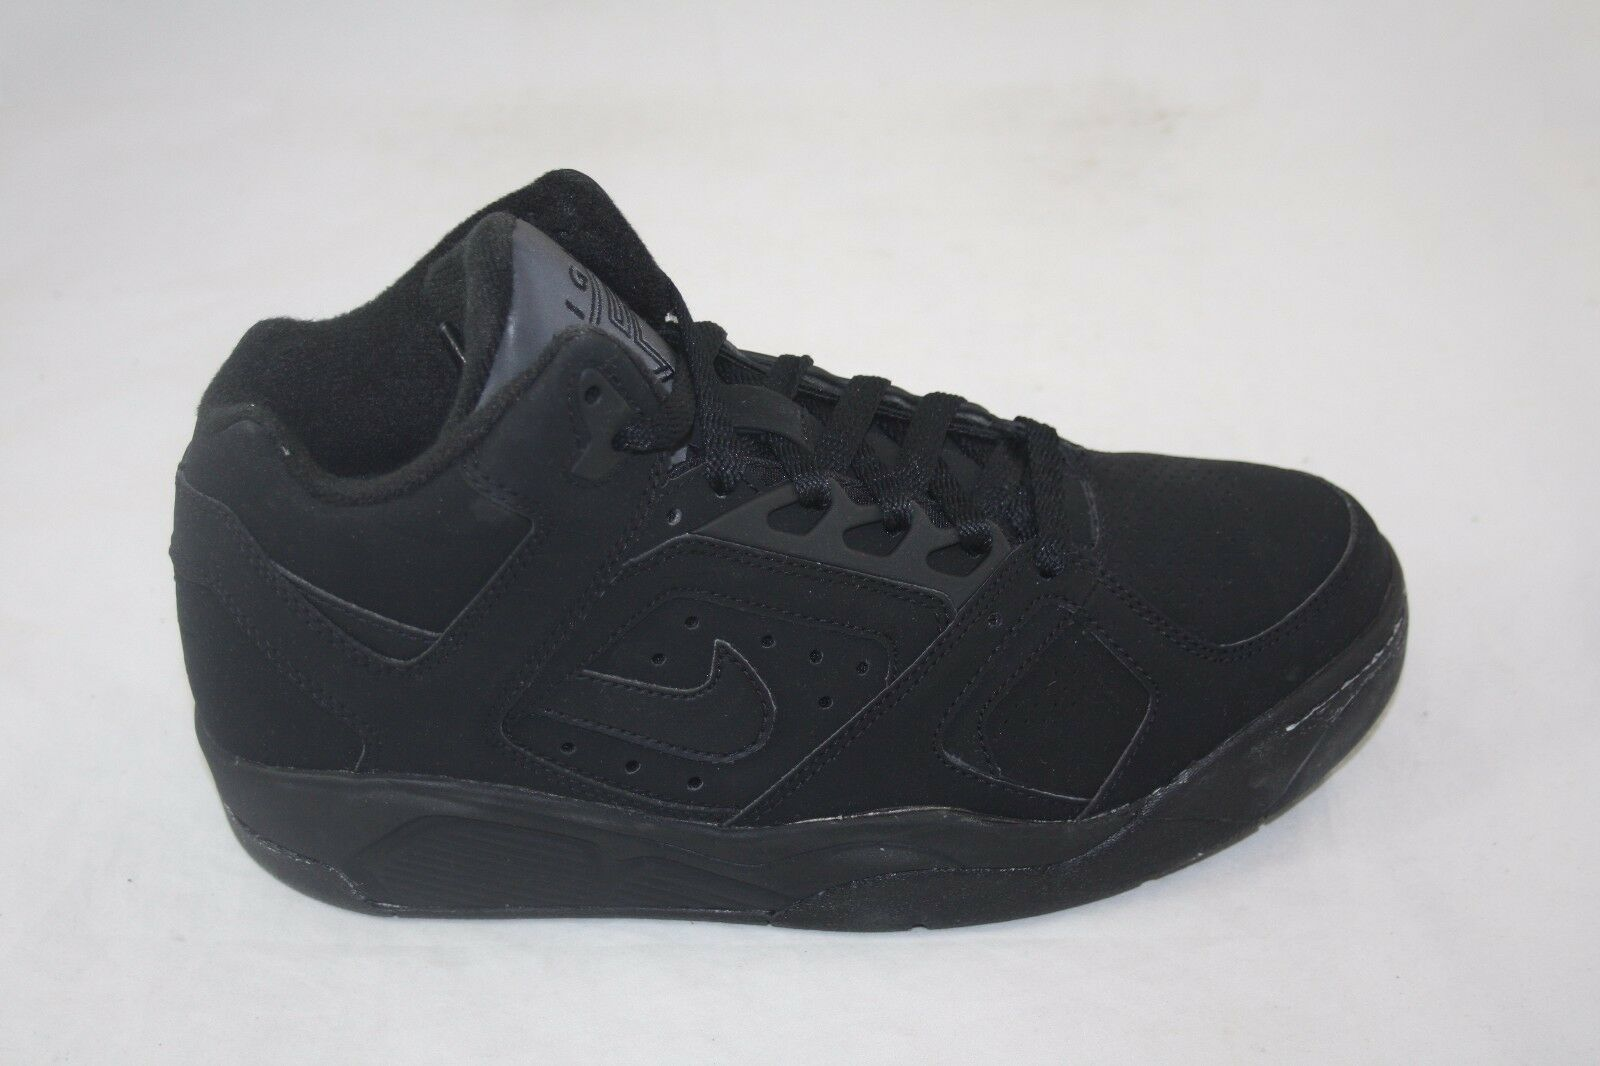 NIKE AIR FLIGHT LITE LOW 318644-001 BLACK/BLACK SIZE 8 MSRP Price reduction The latest discount shoes for men and women